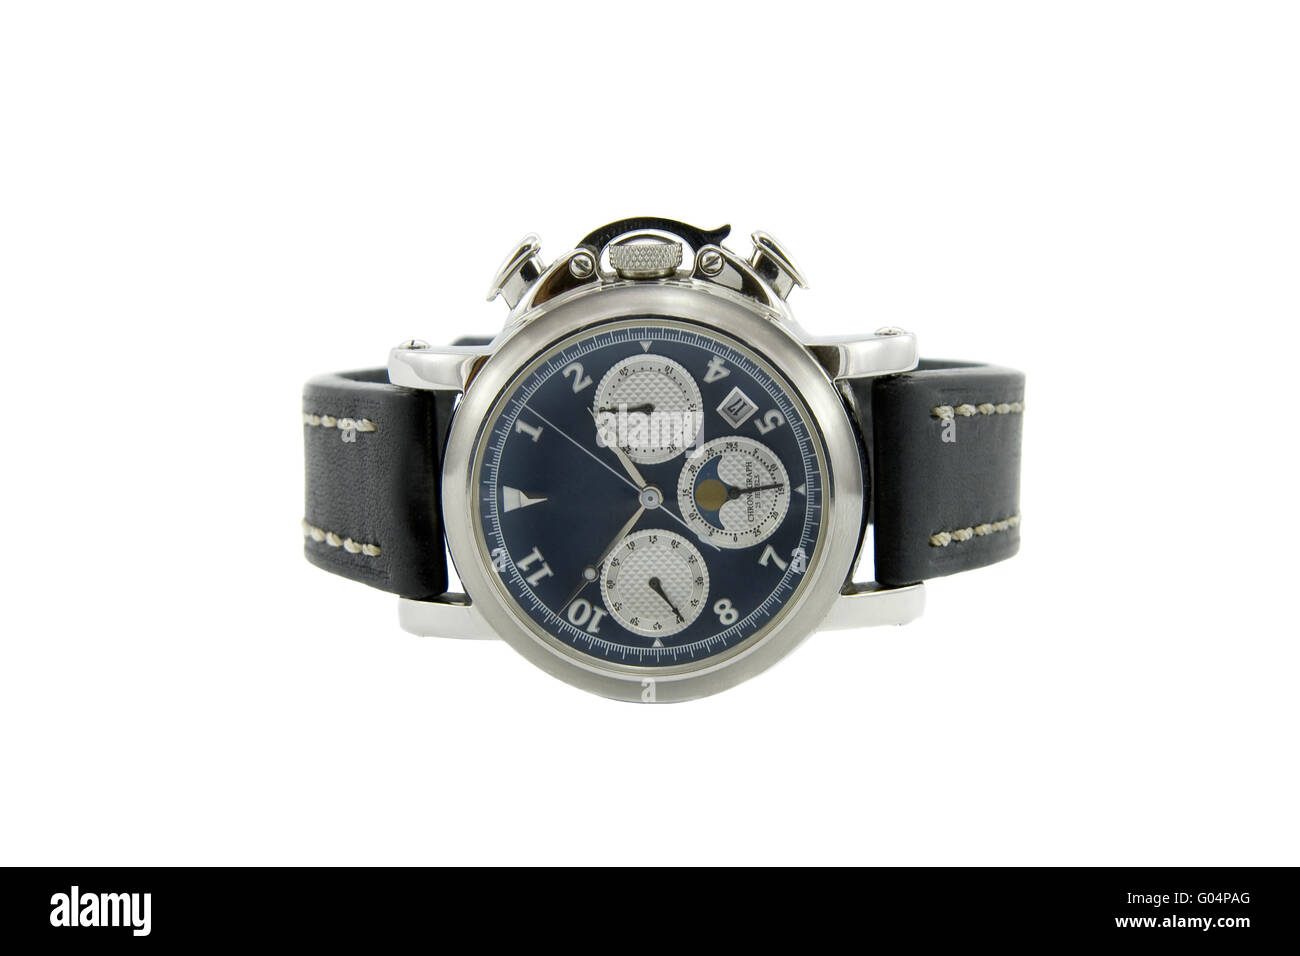 Rich silver chronograph watch with sapphire glass in white background - Stock Image